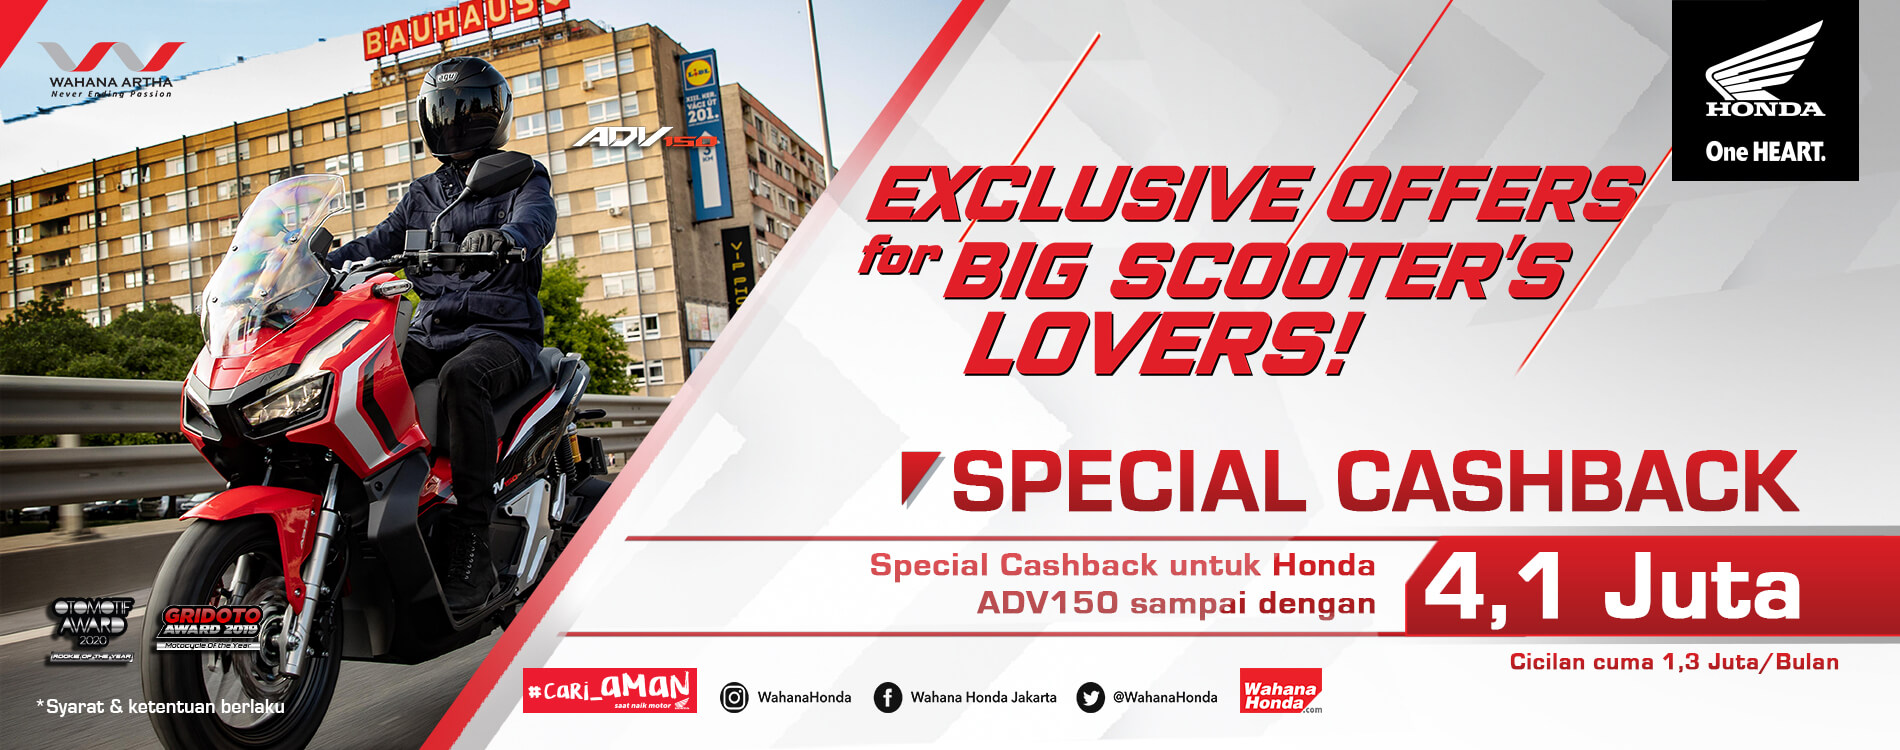 Exclusive Offers For Big Scooter's Lovers ADV150 (Juli - Sep 2020)